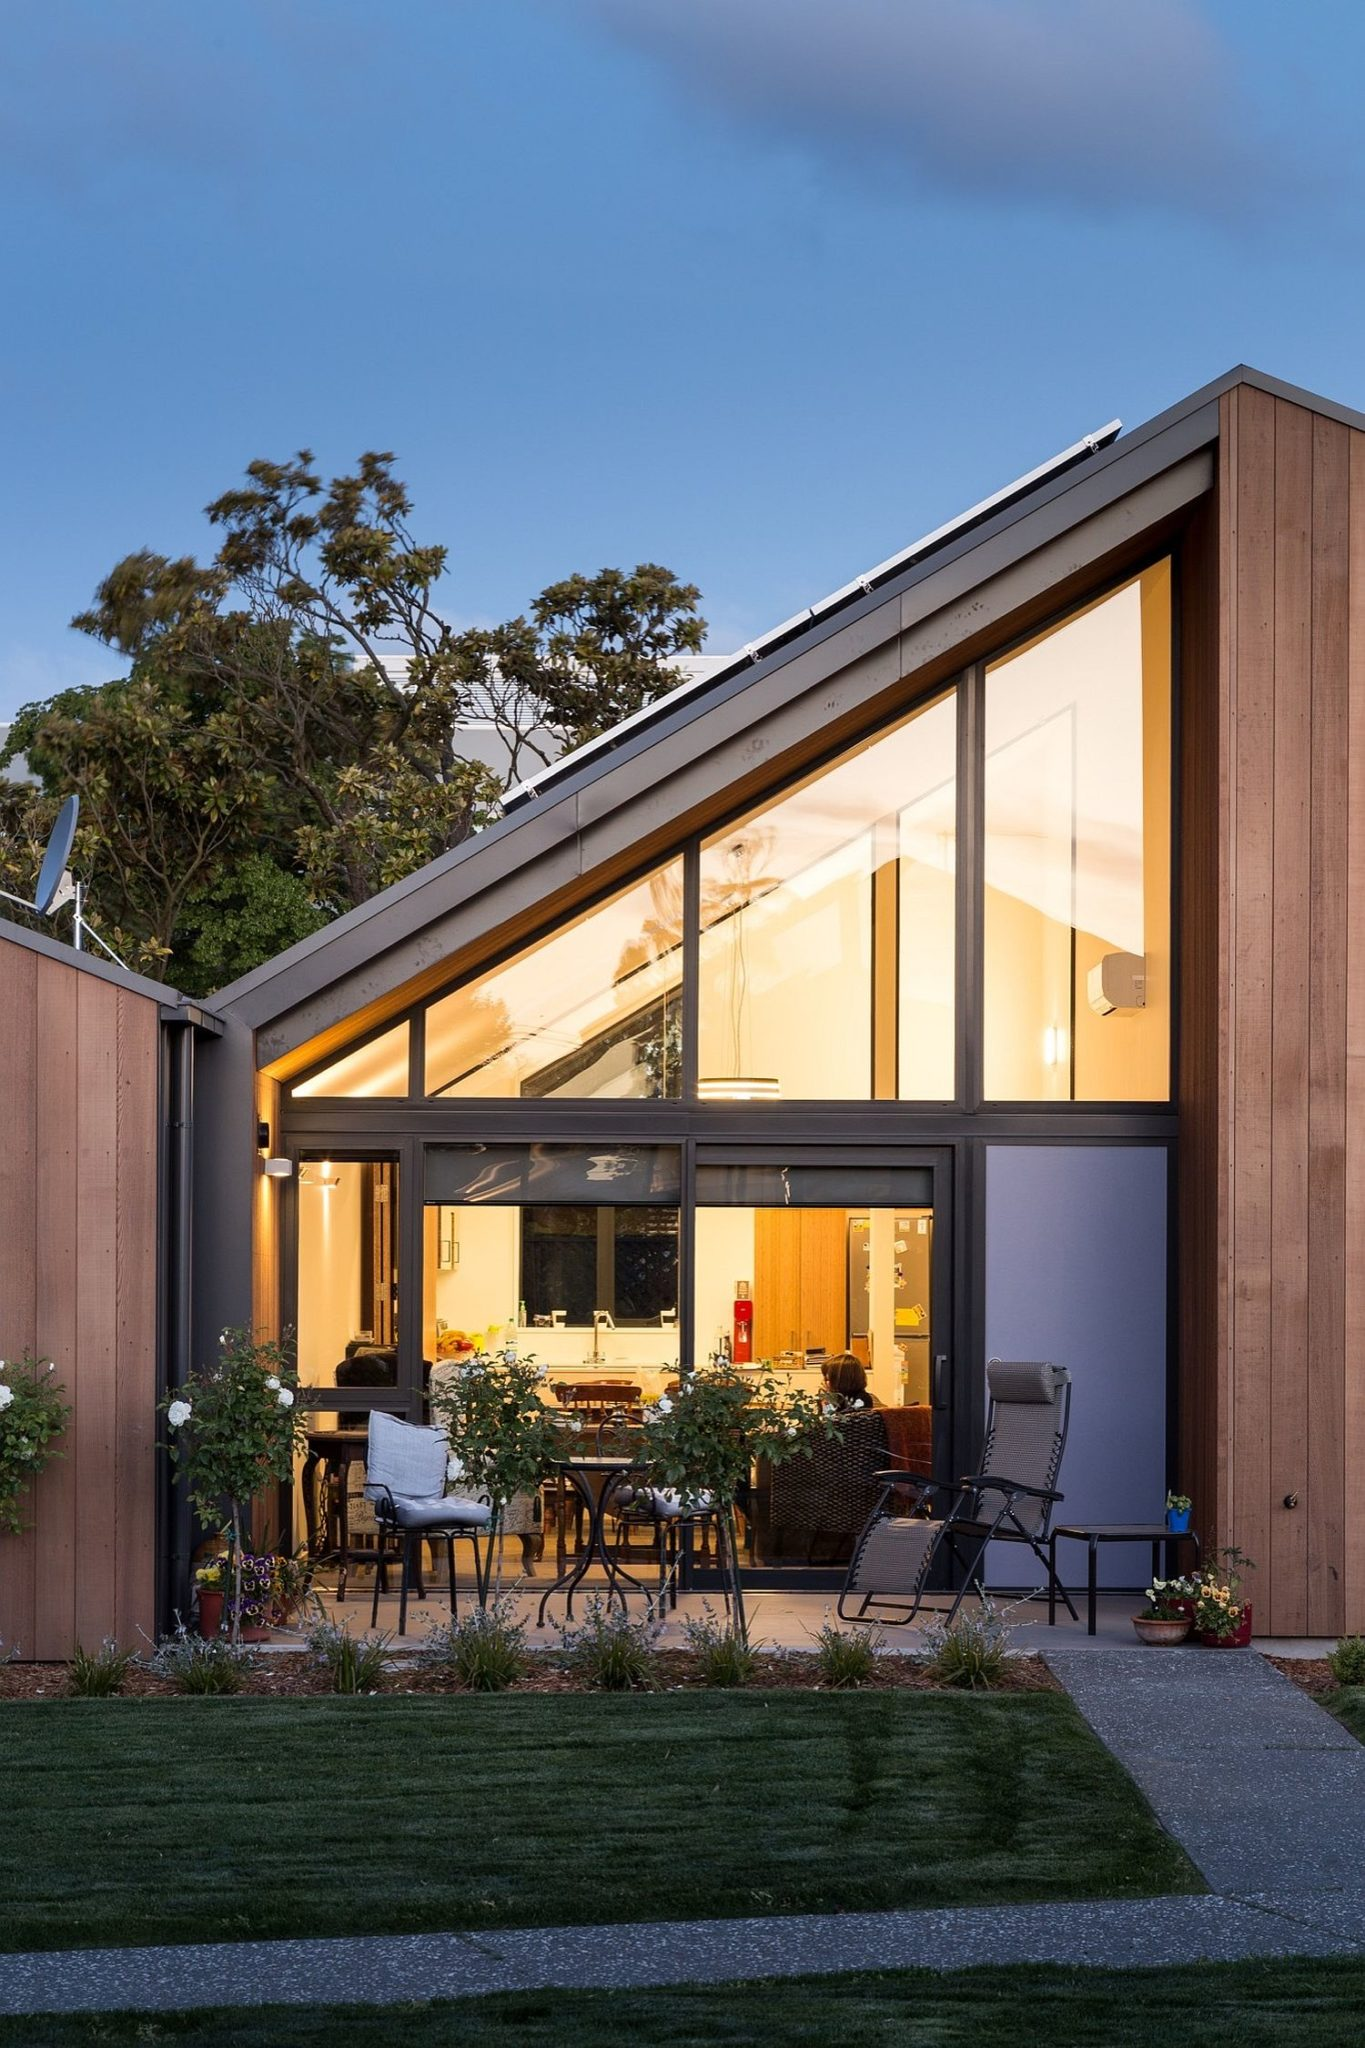 Gabled roofs create spacious and sweeping interiors